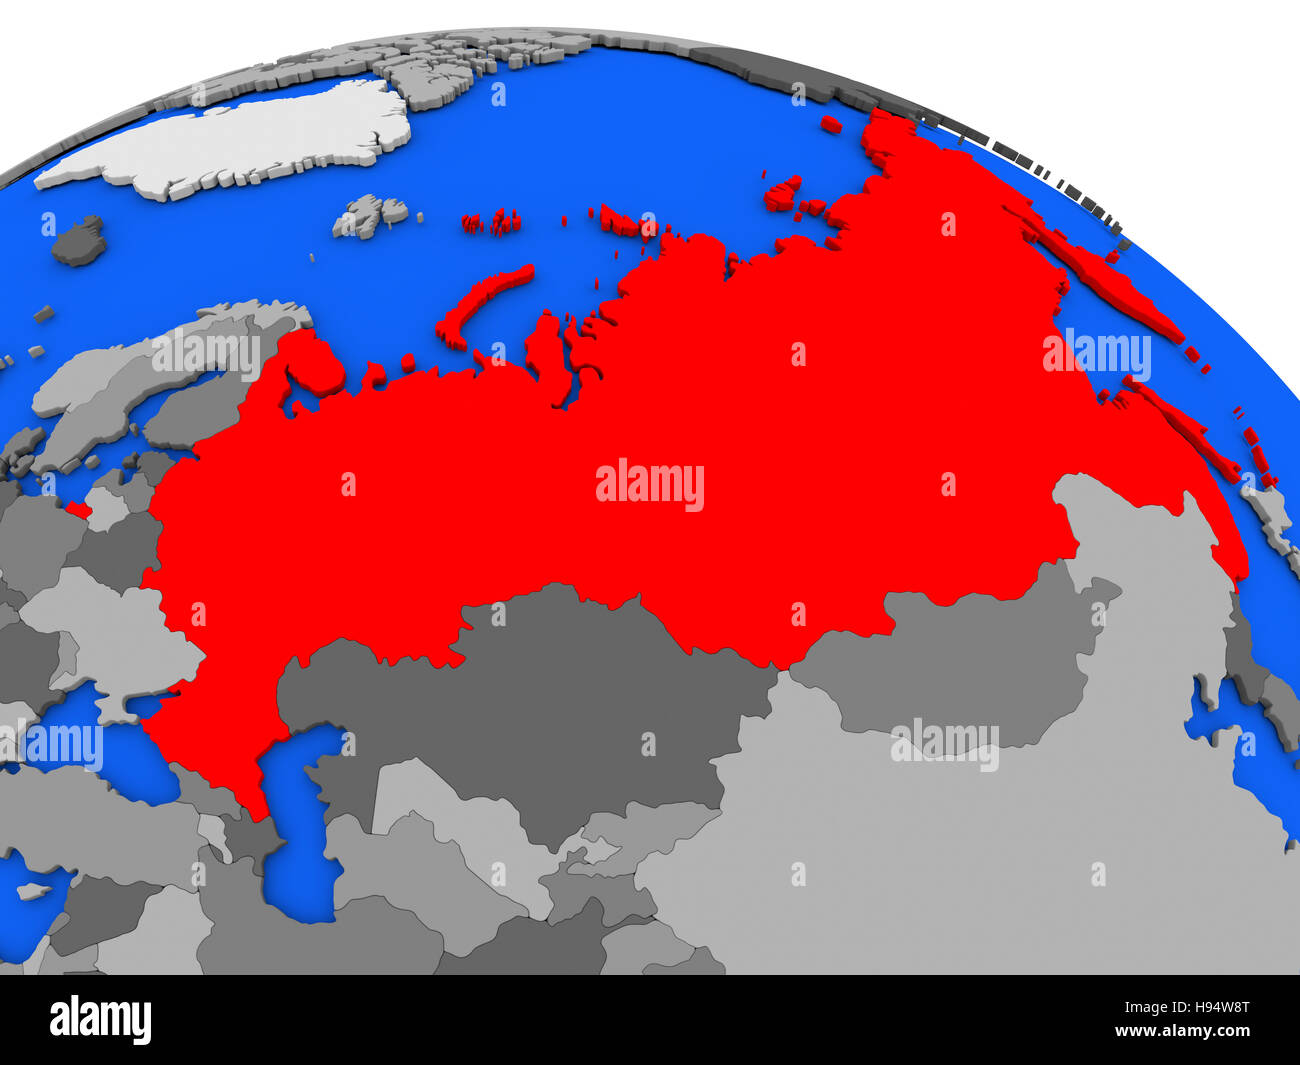 Russia On The World Map.Russia Map Globe Stock Photos Russia Map Globe Stock Images Alamy